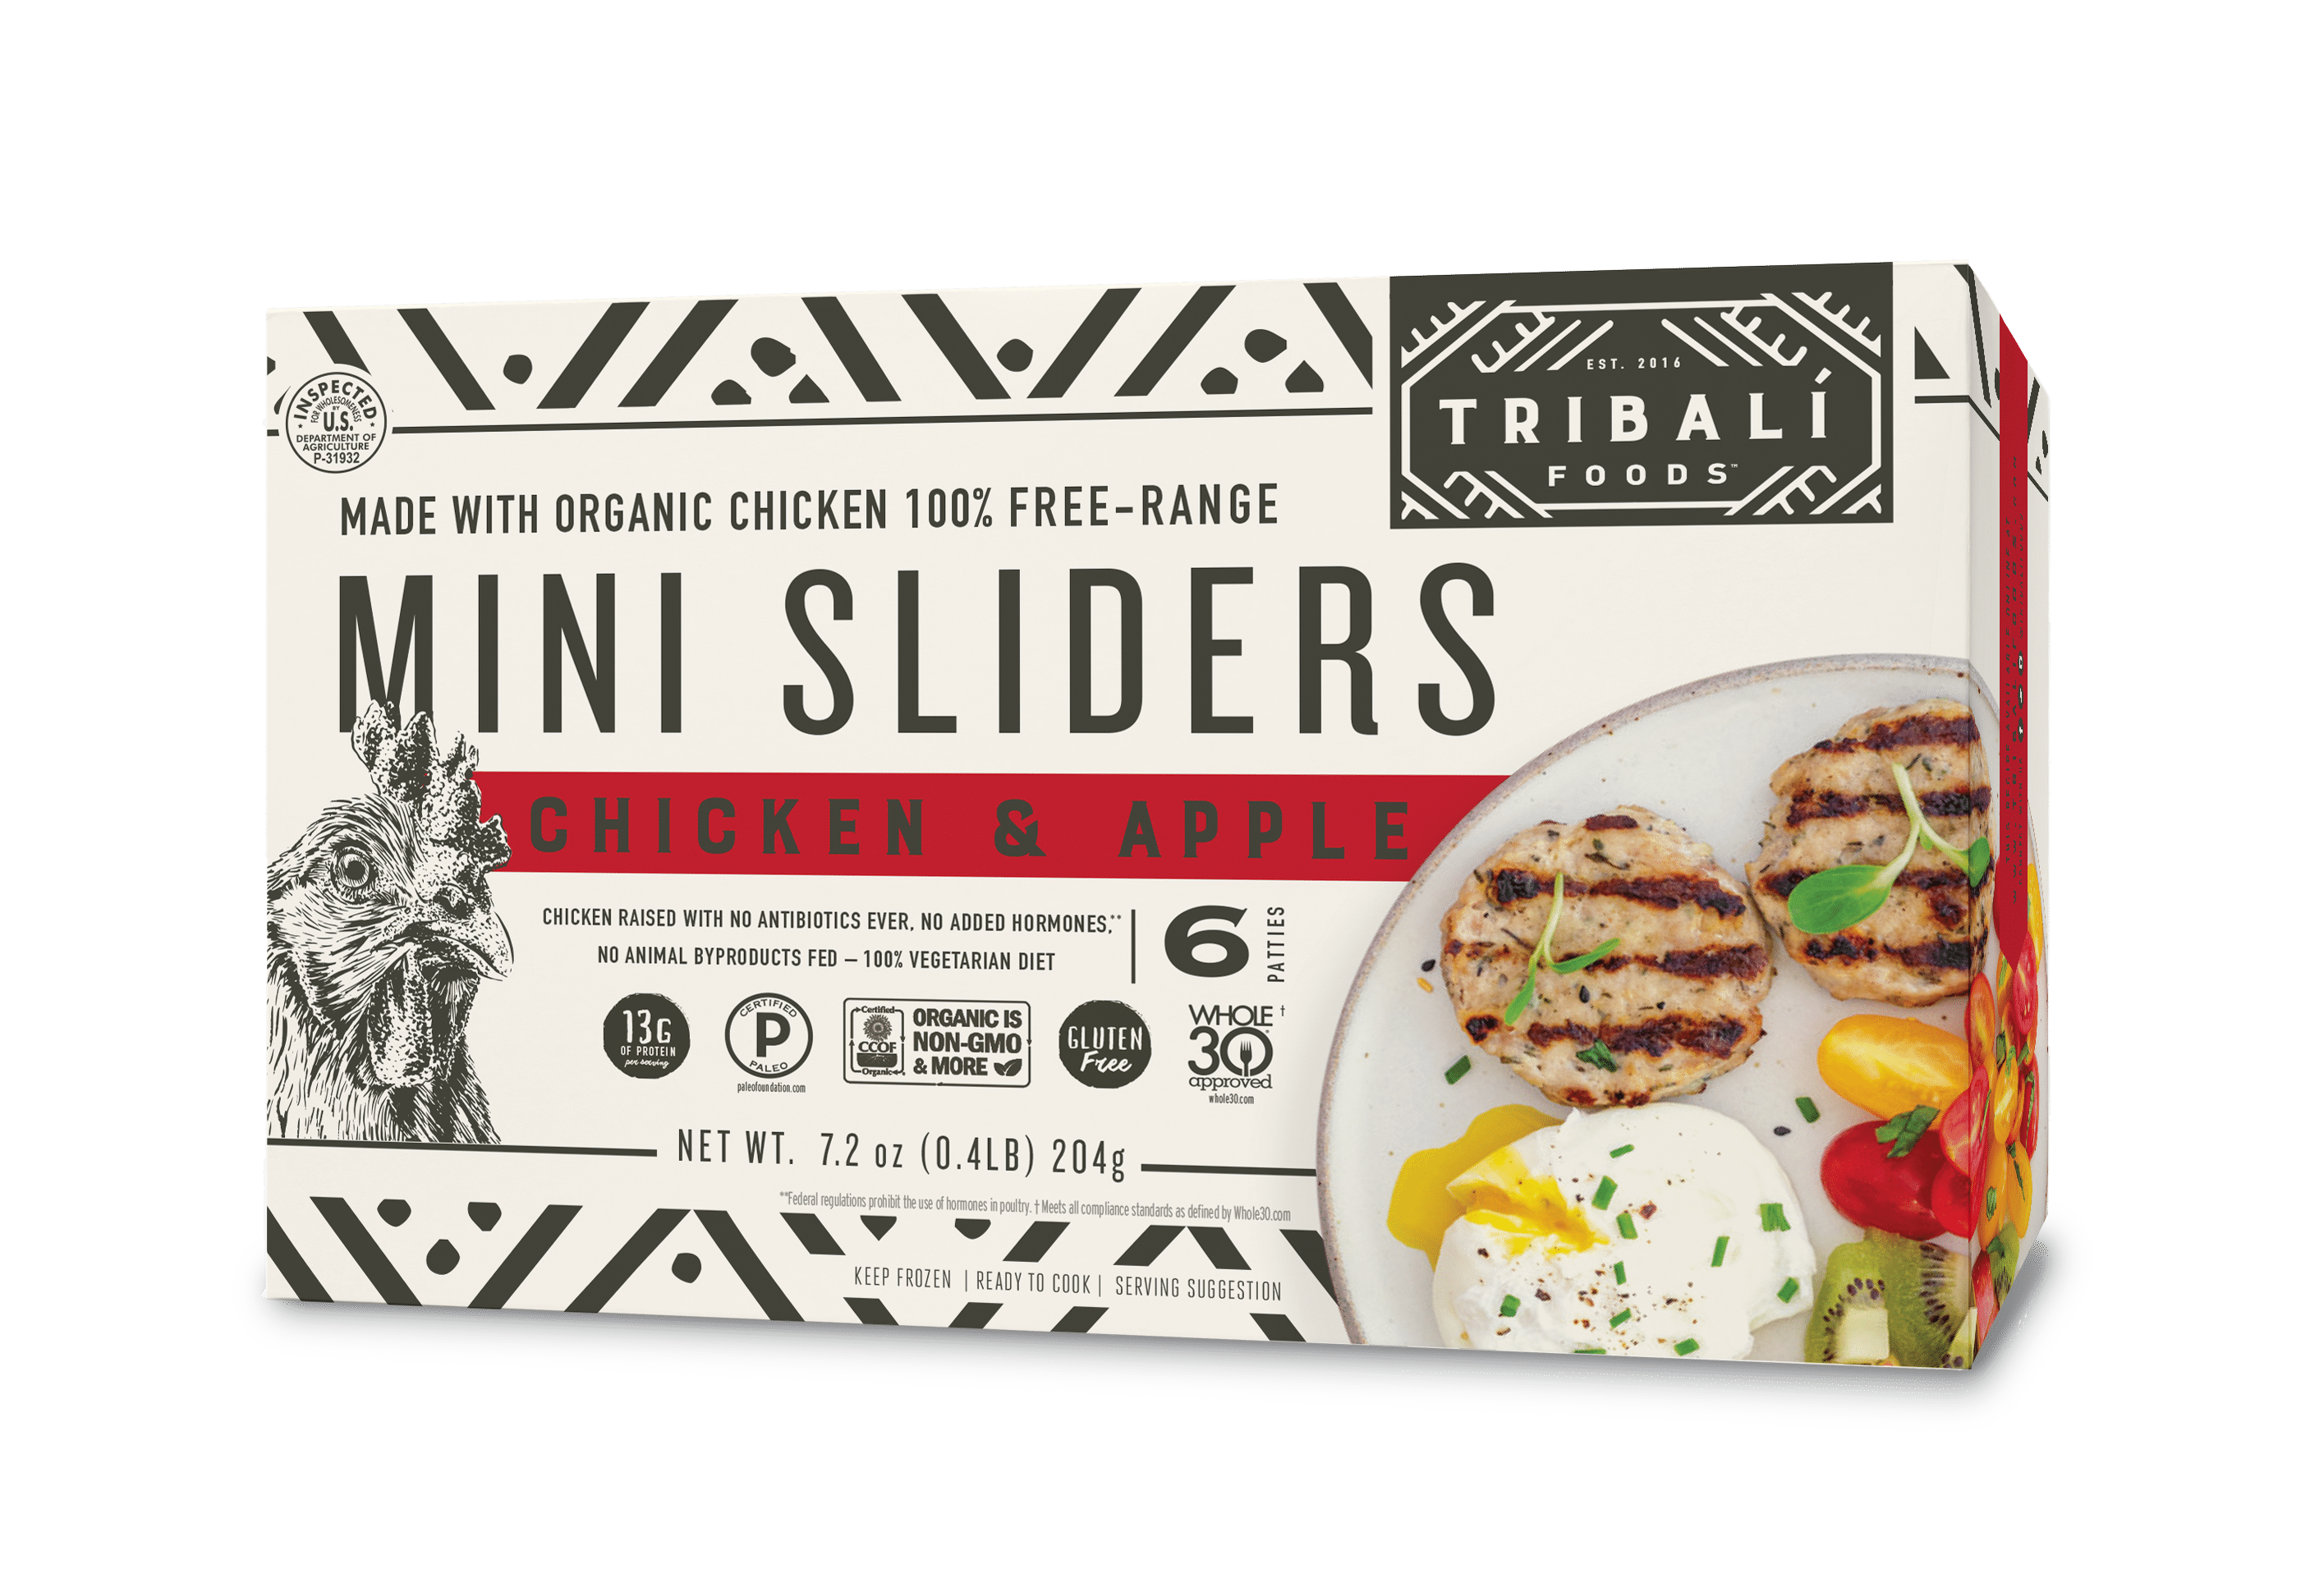 TRIBALÍ Foods Releases Mini Sliders